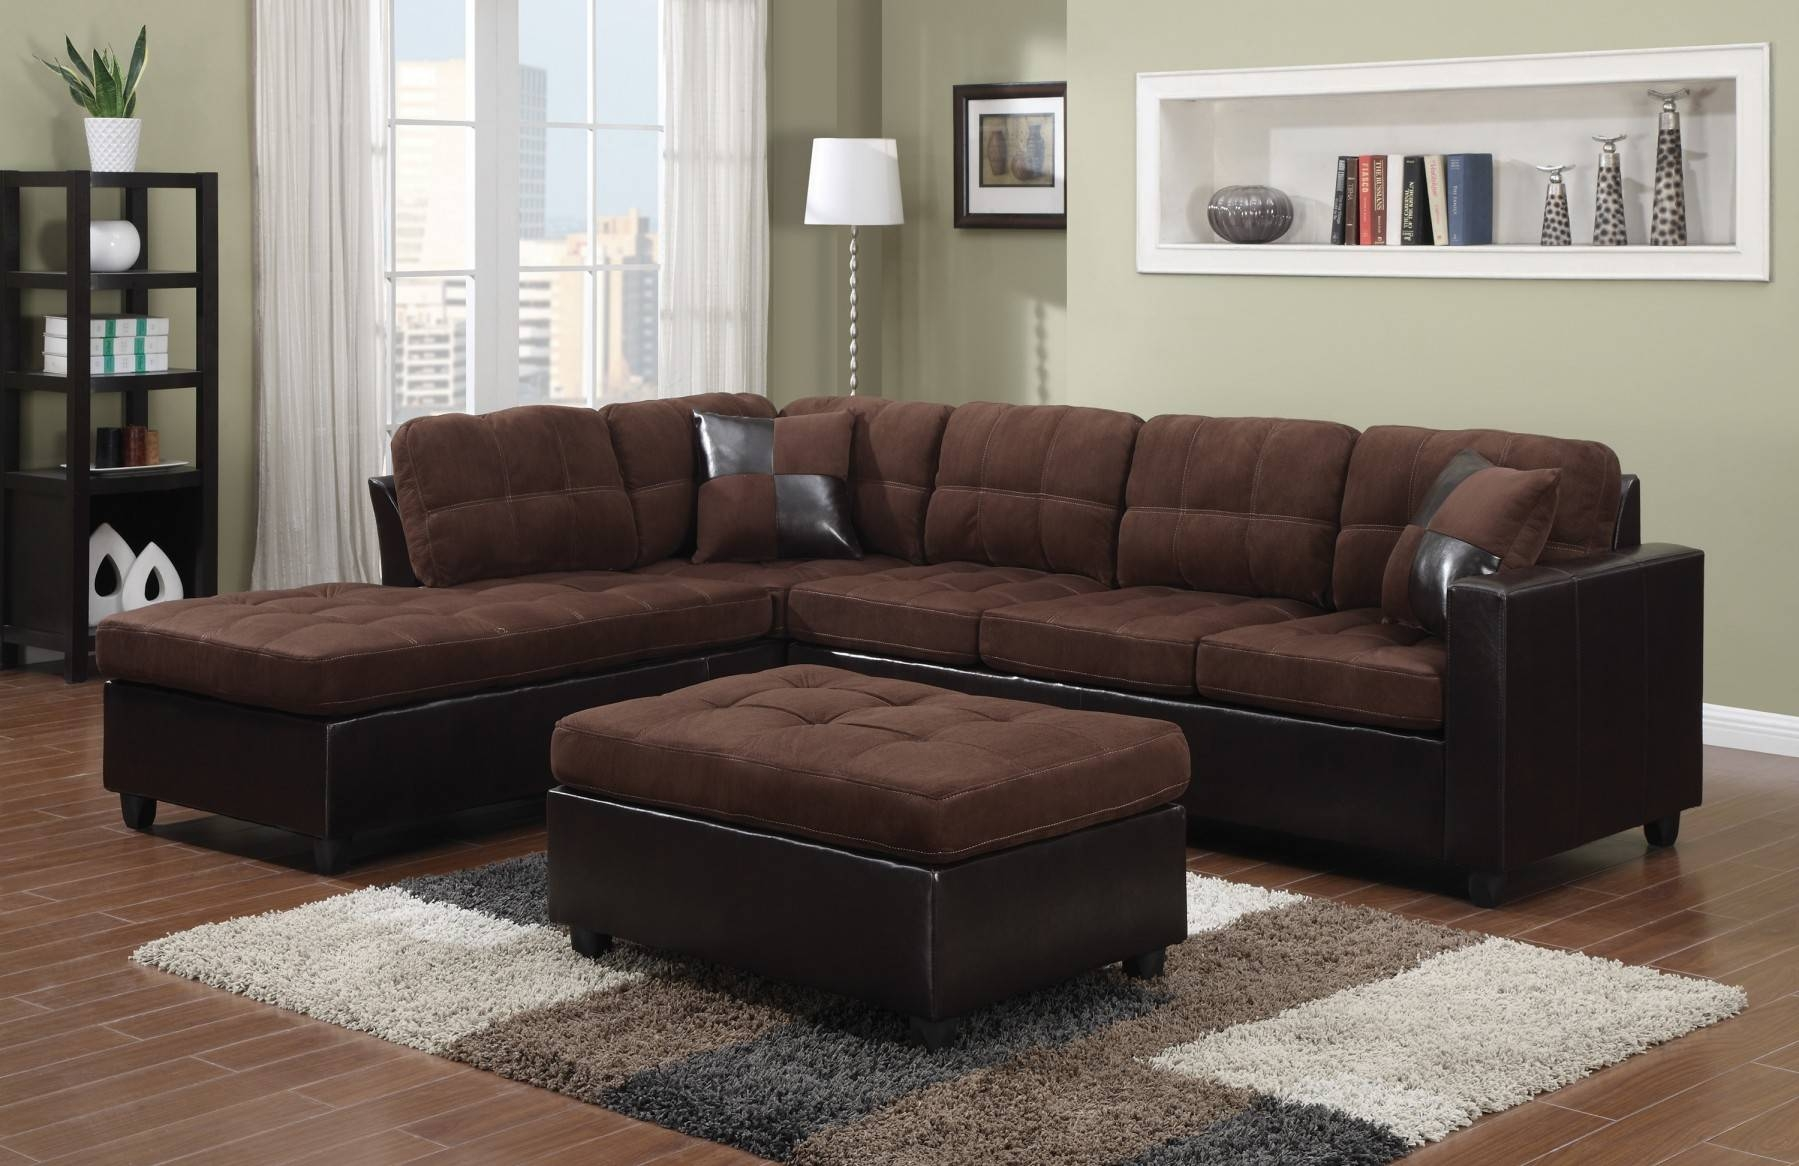 Fascinating Contemporary Black Leather Sectional Sofa Left Side regarding Closeout Sectional Sofas (Image 11 of 30)